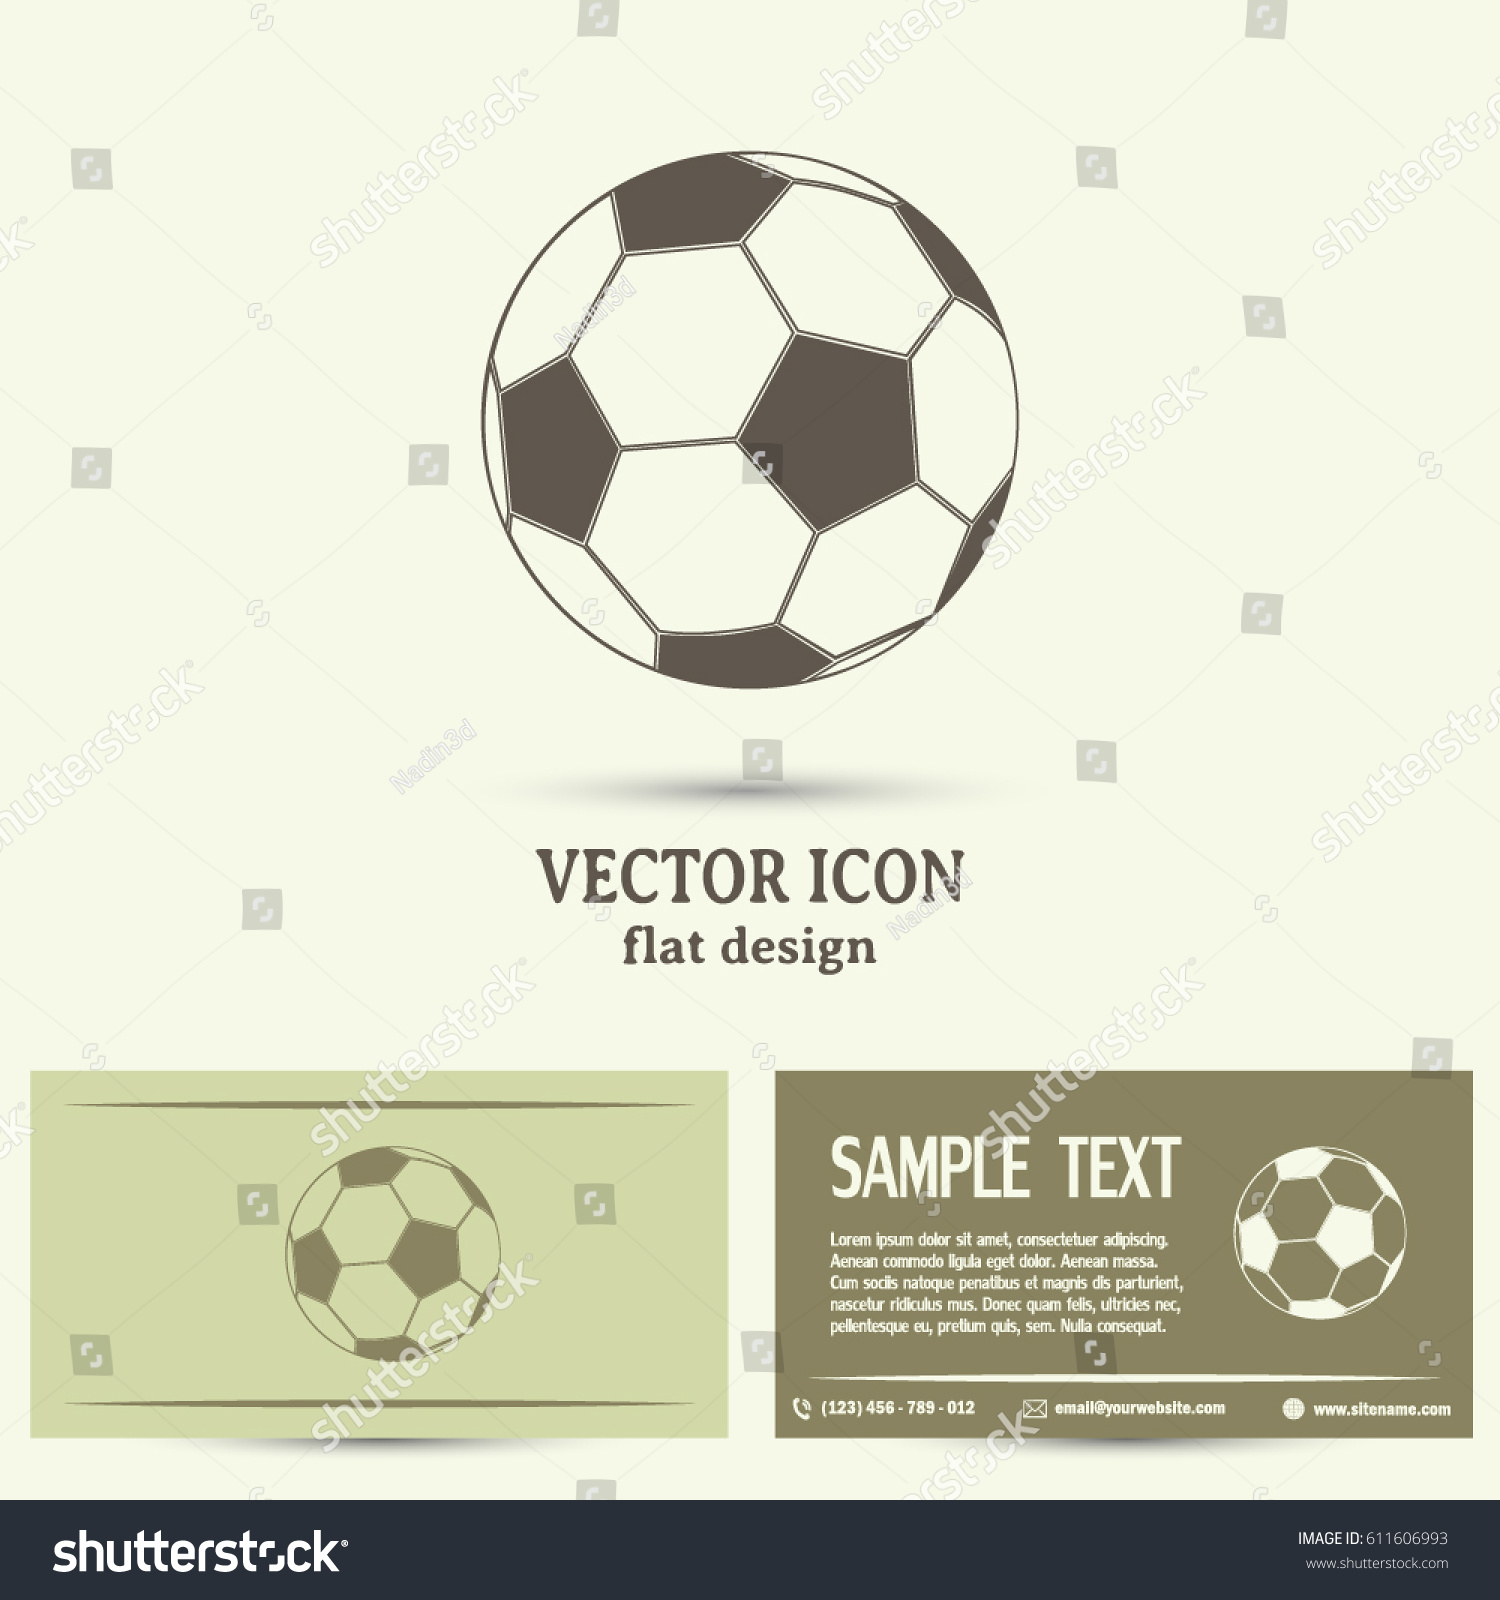 Business Cards Design Soccer Ball Icon Stock Vector 611606993 ...